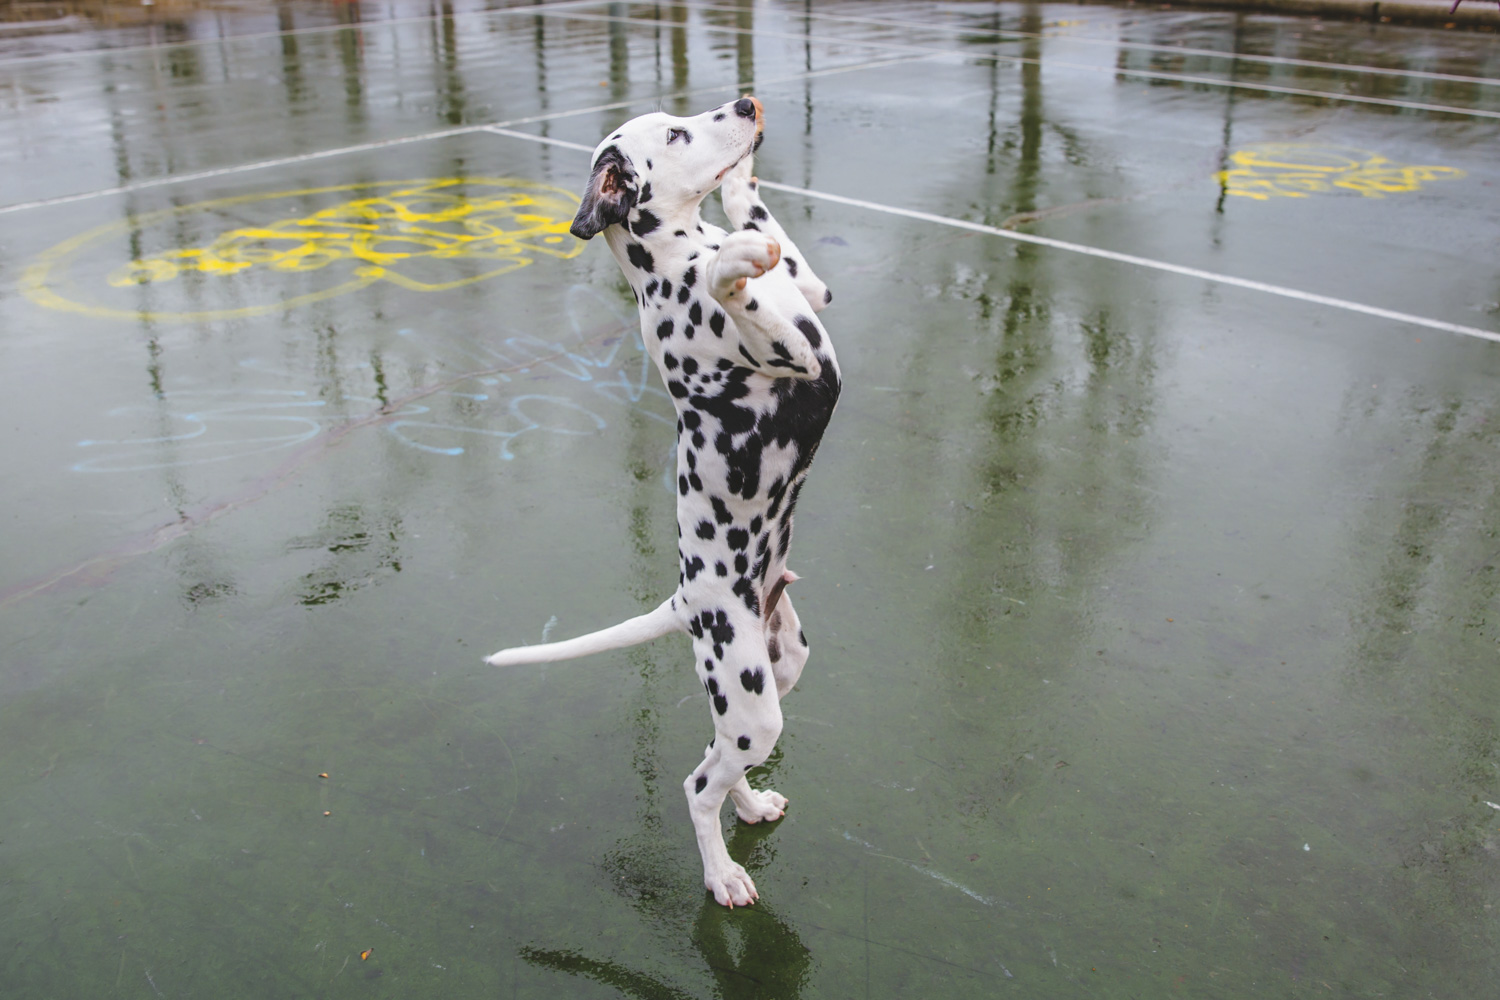 Everyone please meet Domino! Domino is a 5-month-old Dalmatian baby who is a sweet and smart pup who loves meeting new friends, both dog and human, and doing tricks for treats! Domino likes going to Dogwood Play Park, squeaky toys (especially if they have peanut butter in them), his Teddy bear and going on walks. He dislikes being left alone, the vacuum cleaner, rolling suitcases and the rain. You can follow Domino's journey through life at @domino.the.dalmatian_. The Seattle RUFFined Spotlight is a weekly profile of local pets living and loving life in the PNW. If you or someone you know has a pet you'd like featured, email us at hello@seattlerefined.com or tag #SeattleRUFFined and your furbaby could be the next spotlighted! (Image: Sunita Martini / Seattle Refined).